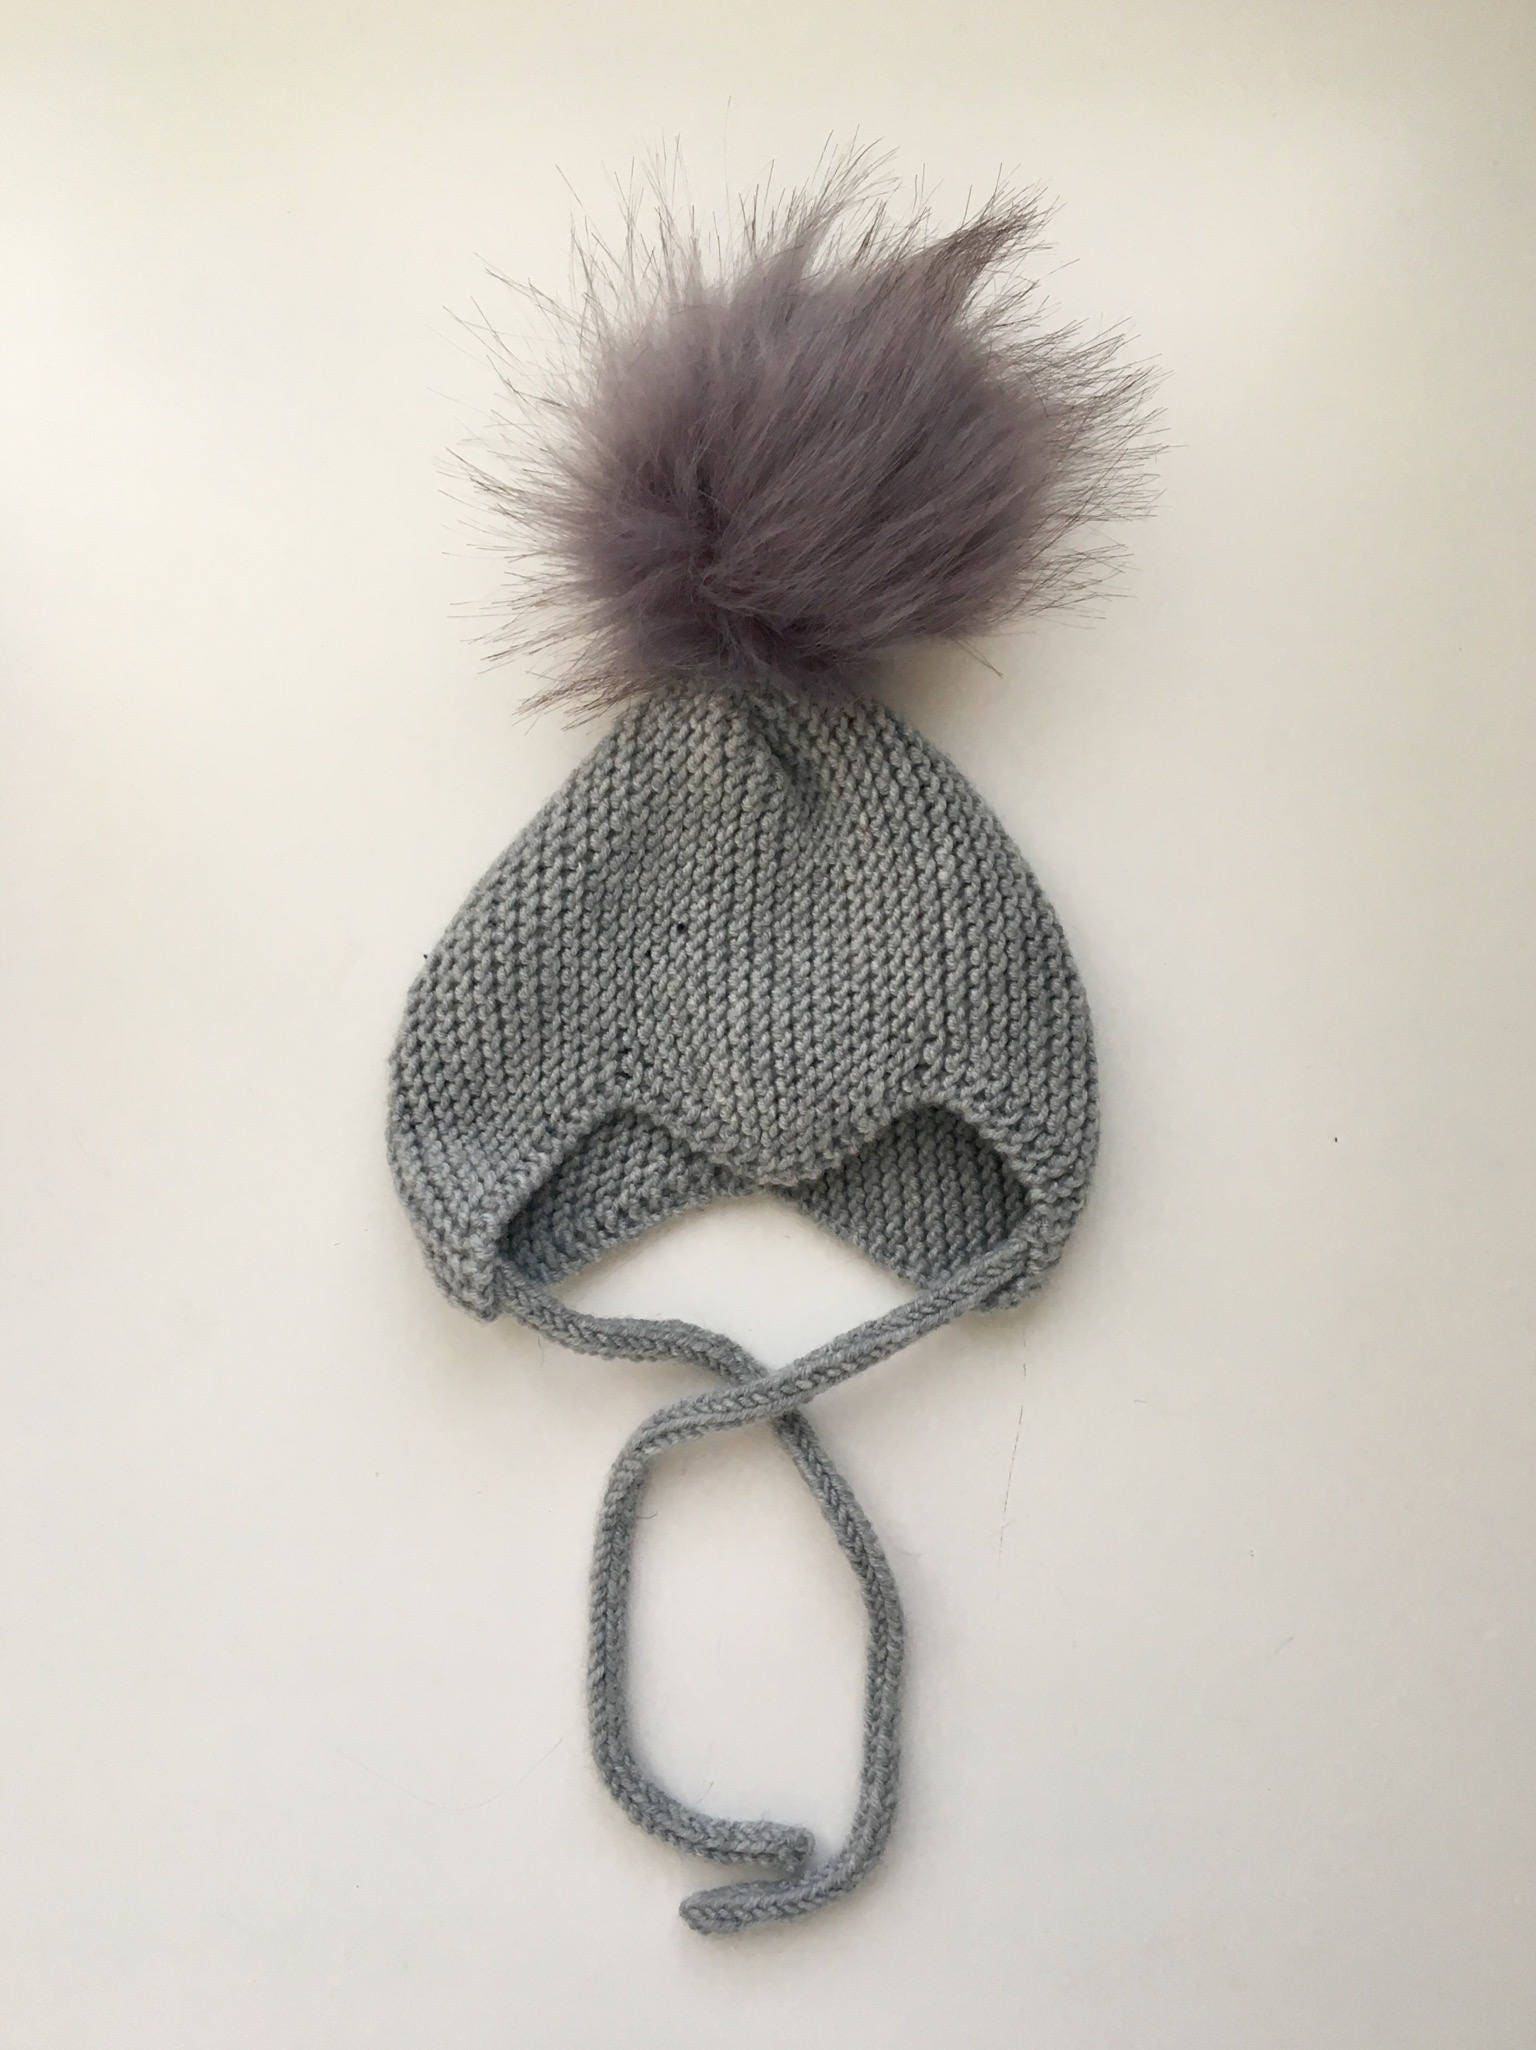 The Scandi Baby Pixie hat in Merino wool - size newborn ed65114fc37